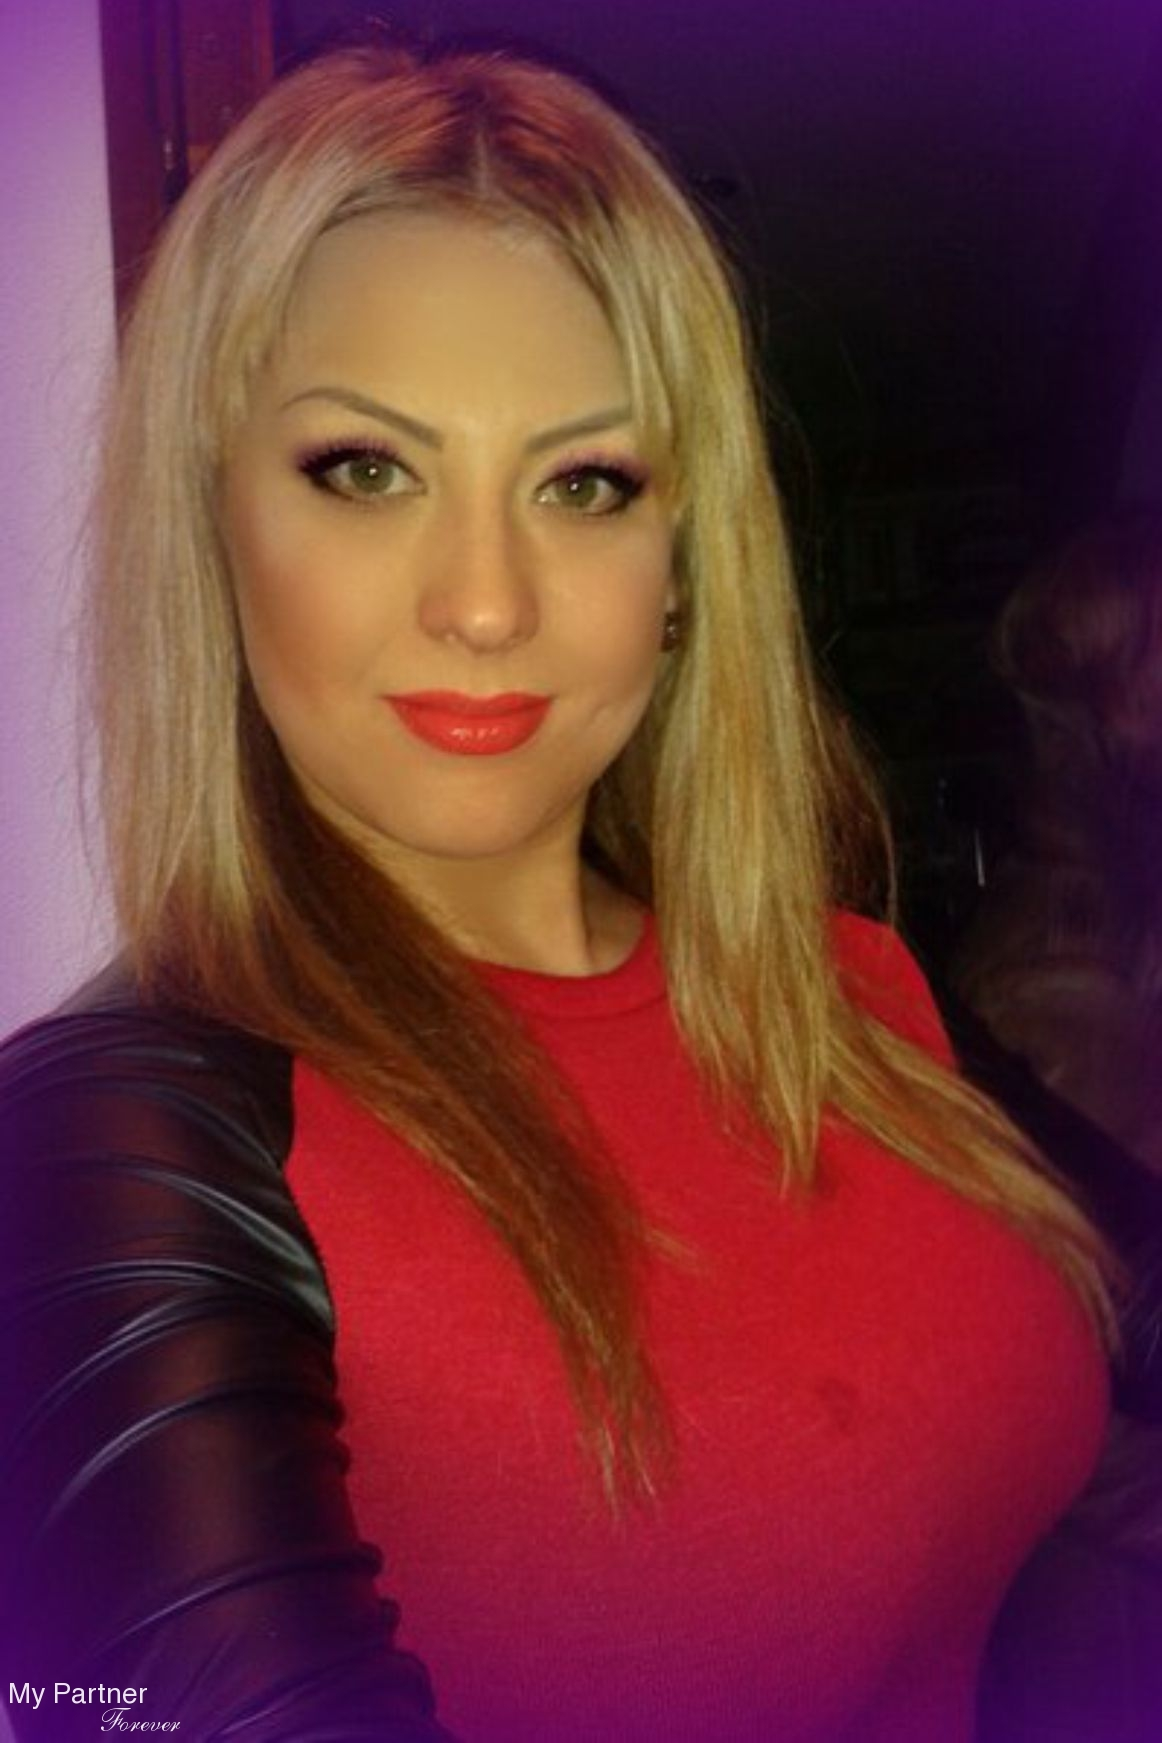 Russian girl dating free